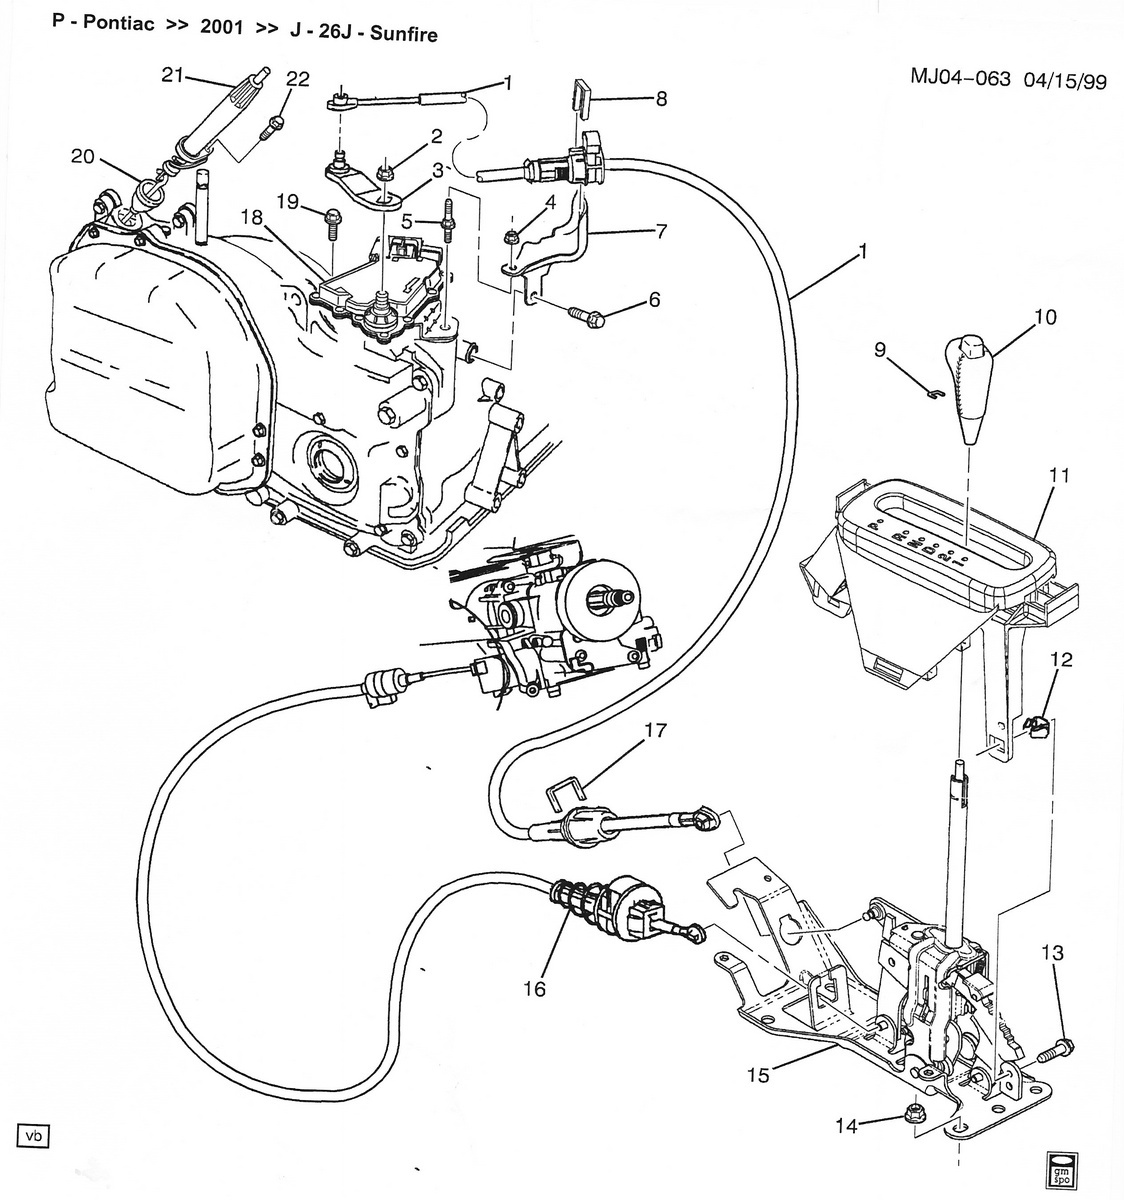 2004 Chevy Trailblazer Wiring Diagram For Wires From Center Console To Back Distribution Box